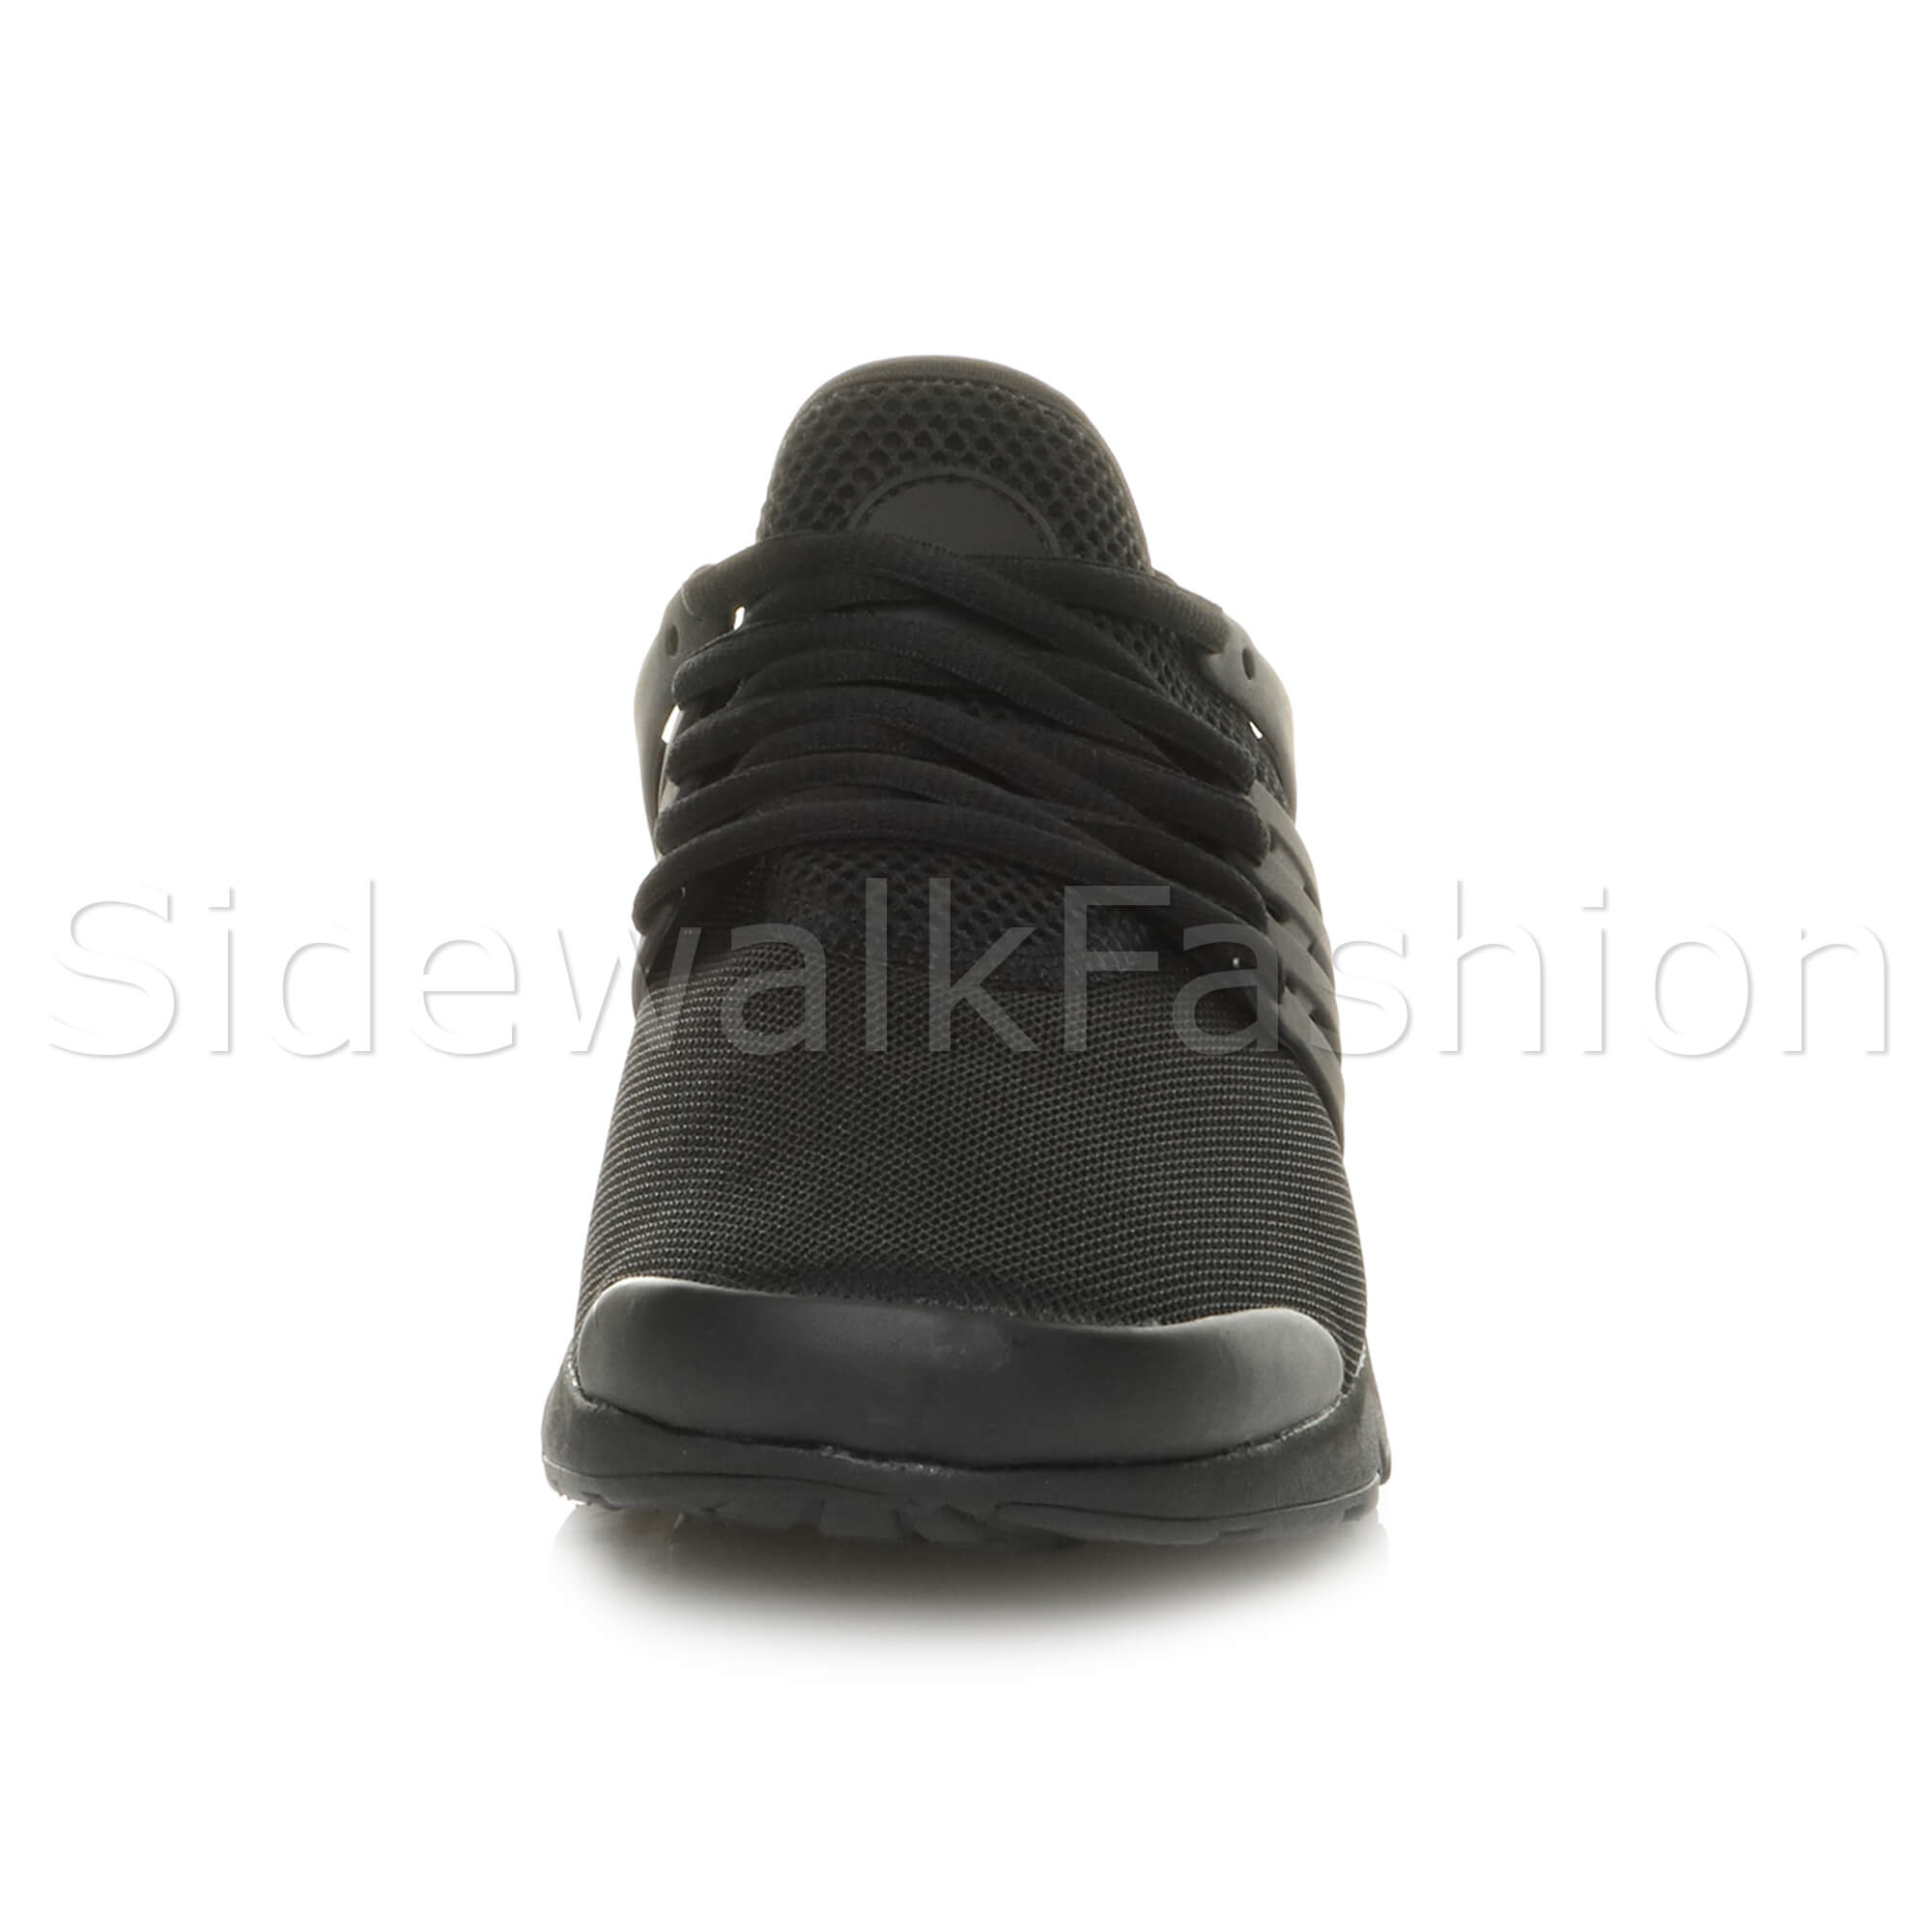 Mens-lace-up-sports-casual-low-top-gym-running-flexible-sneakers-trainers-size miniatuur 7